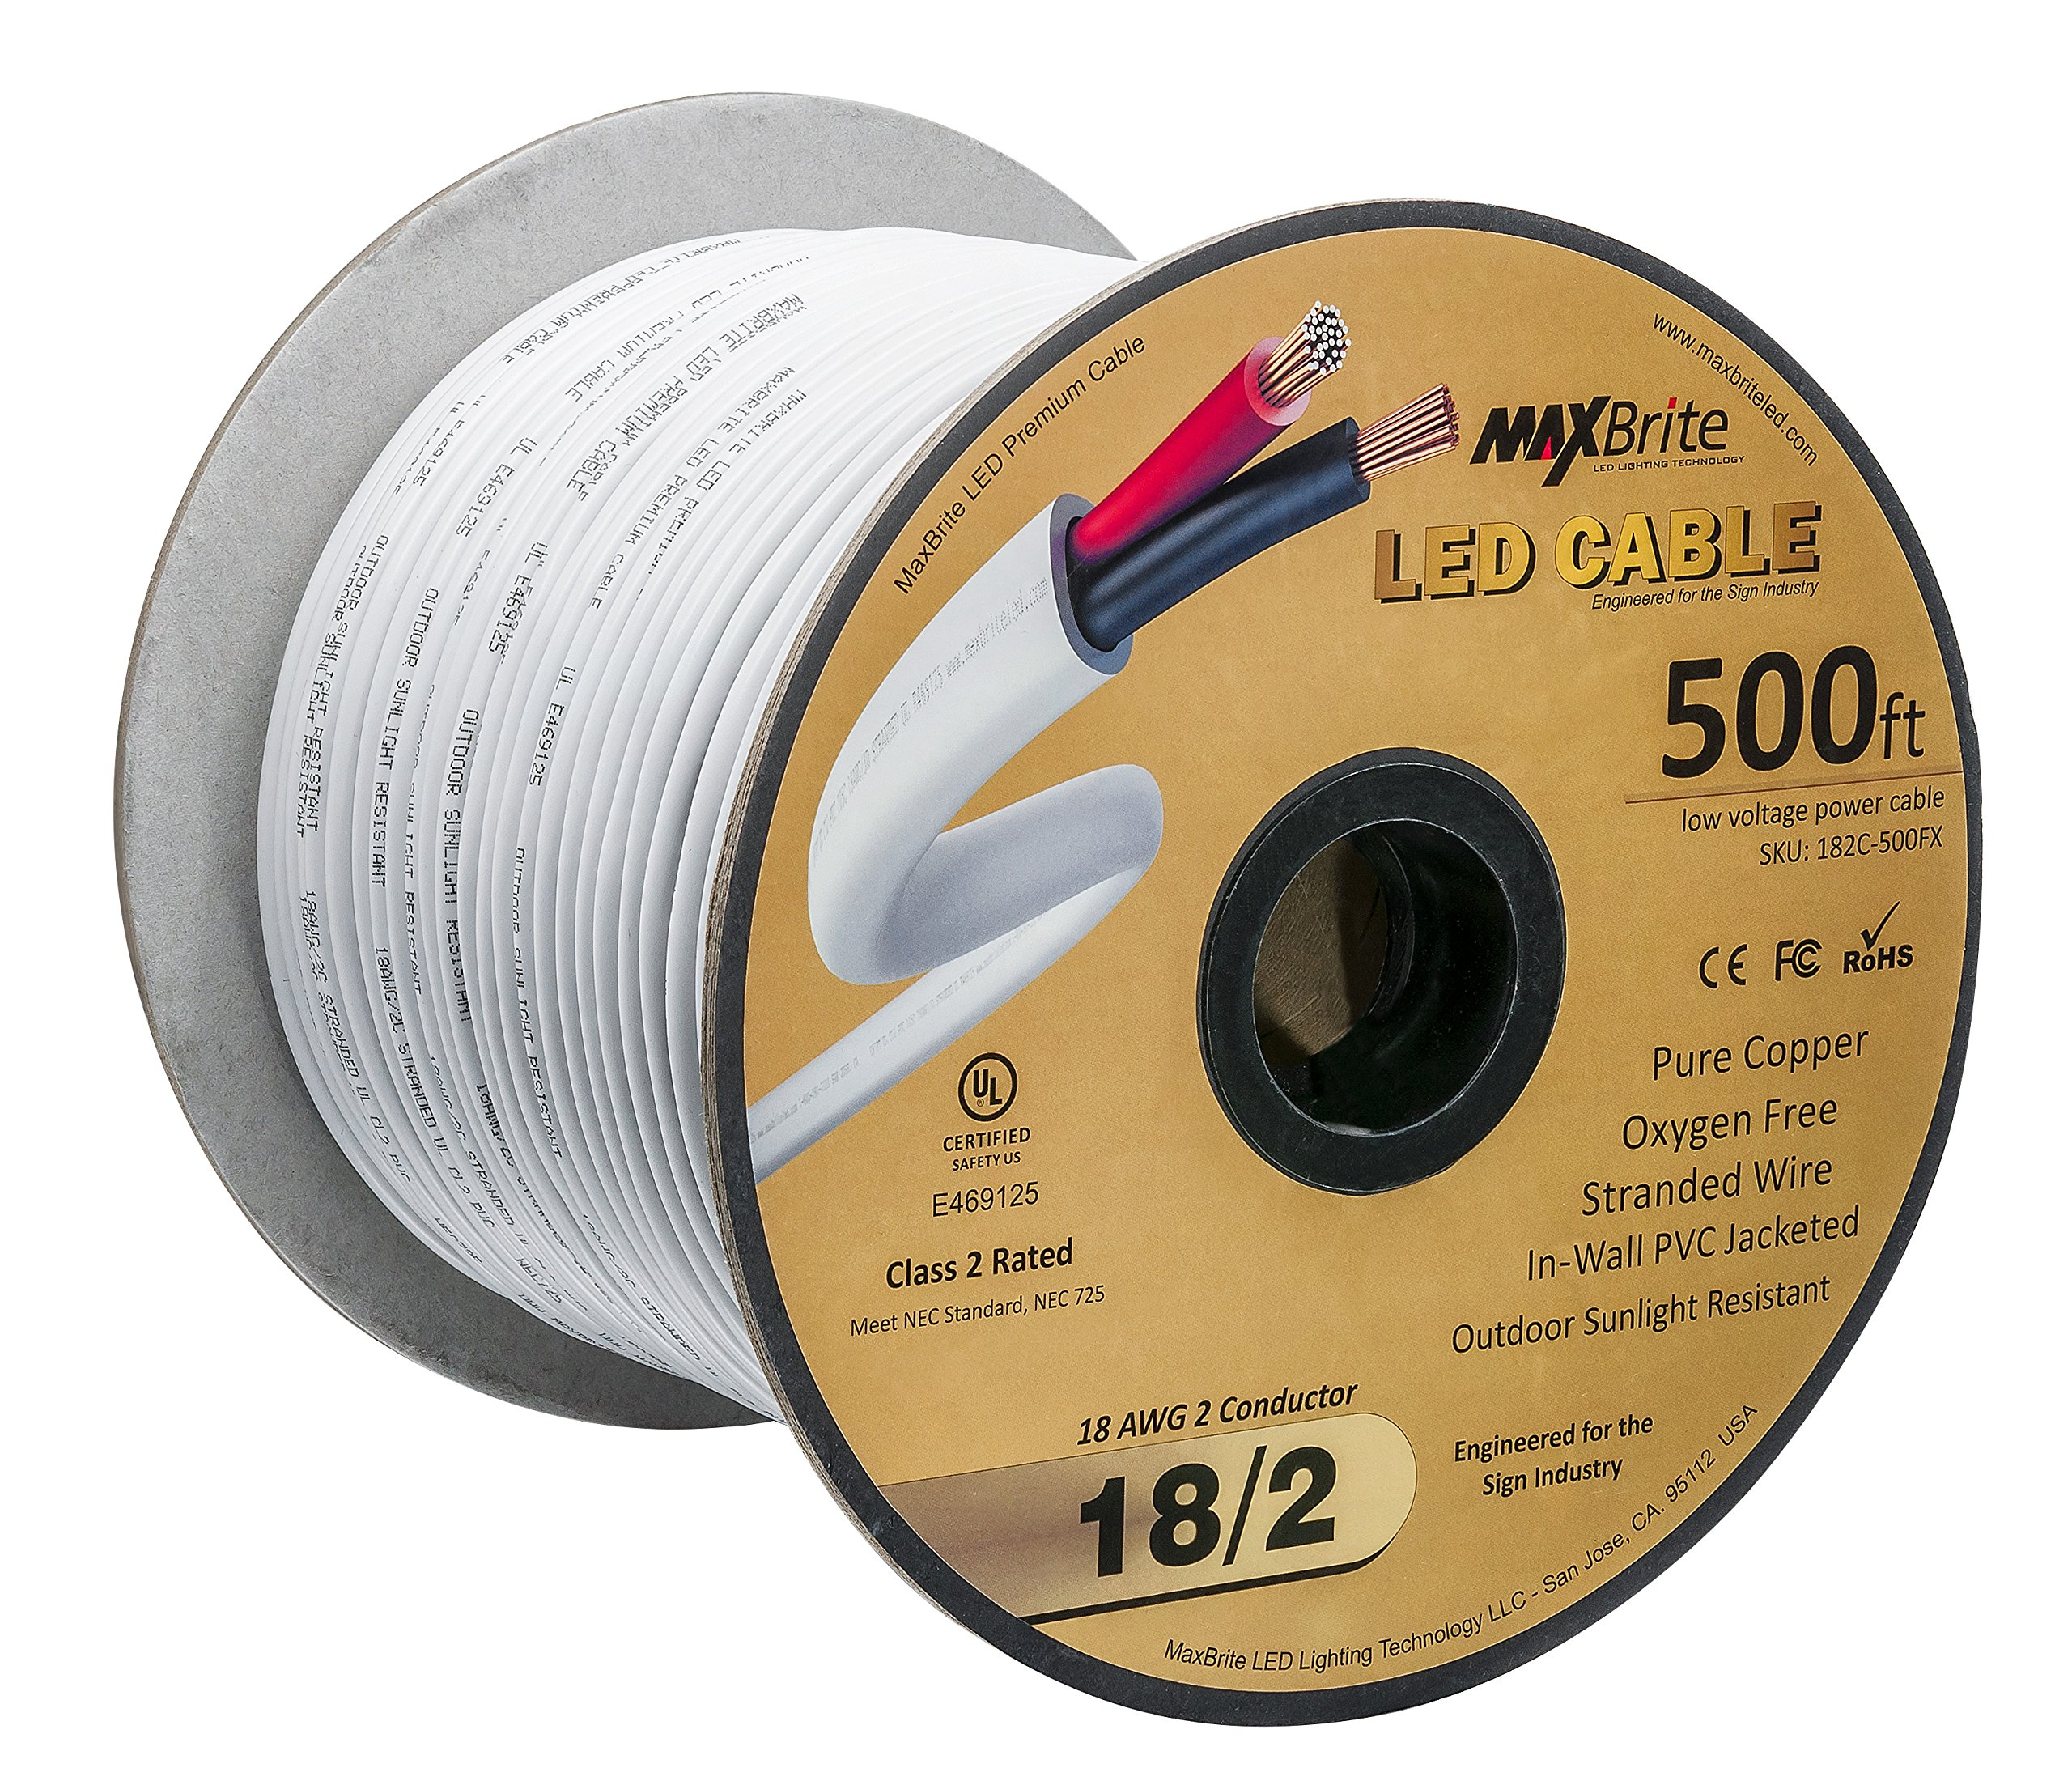 18AWG 500 Feet Low Voltage LED Cable, 2 Conductor, Outdoor Rated, Jacketed In-Wall Speaker Wire UL/cUL Class 2, Sunlight Resistant